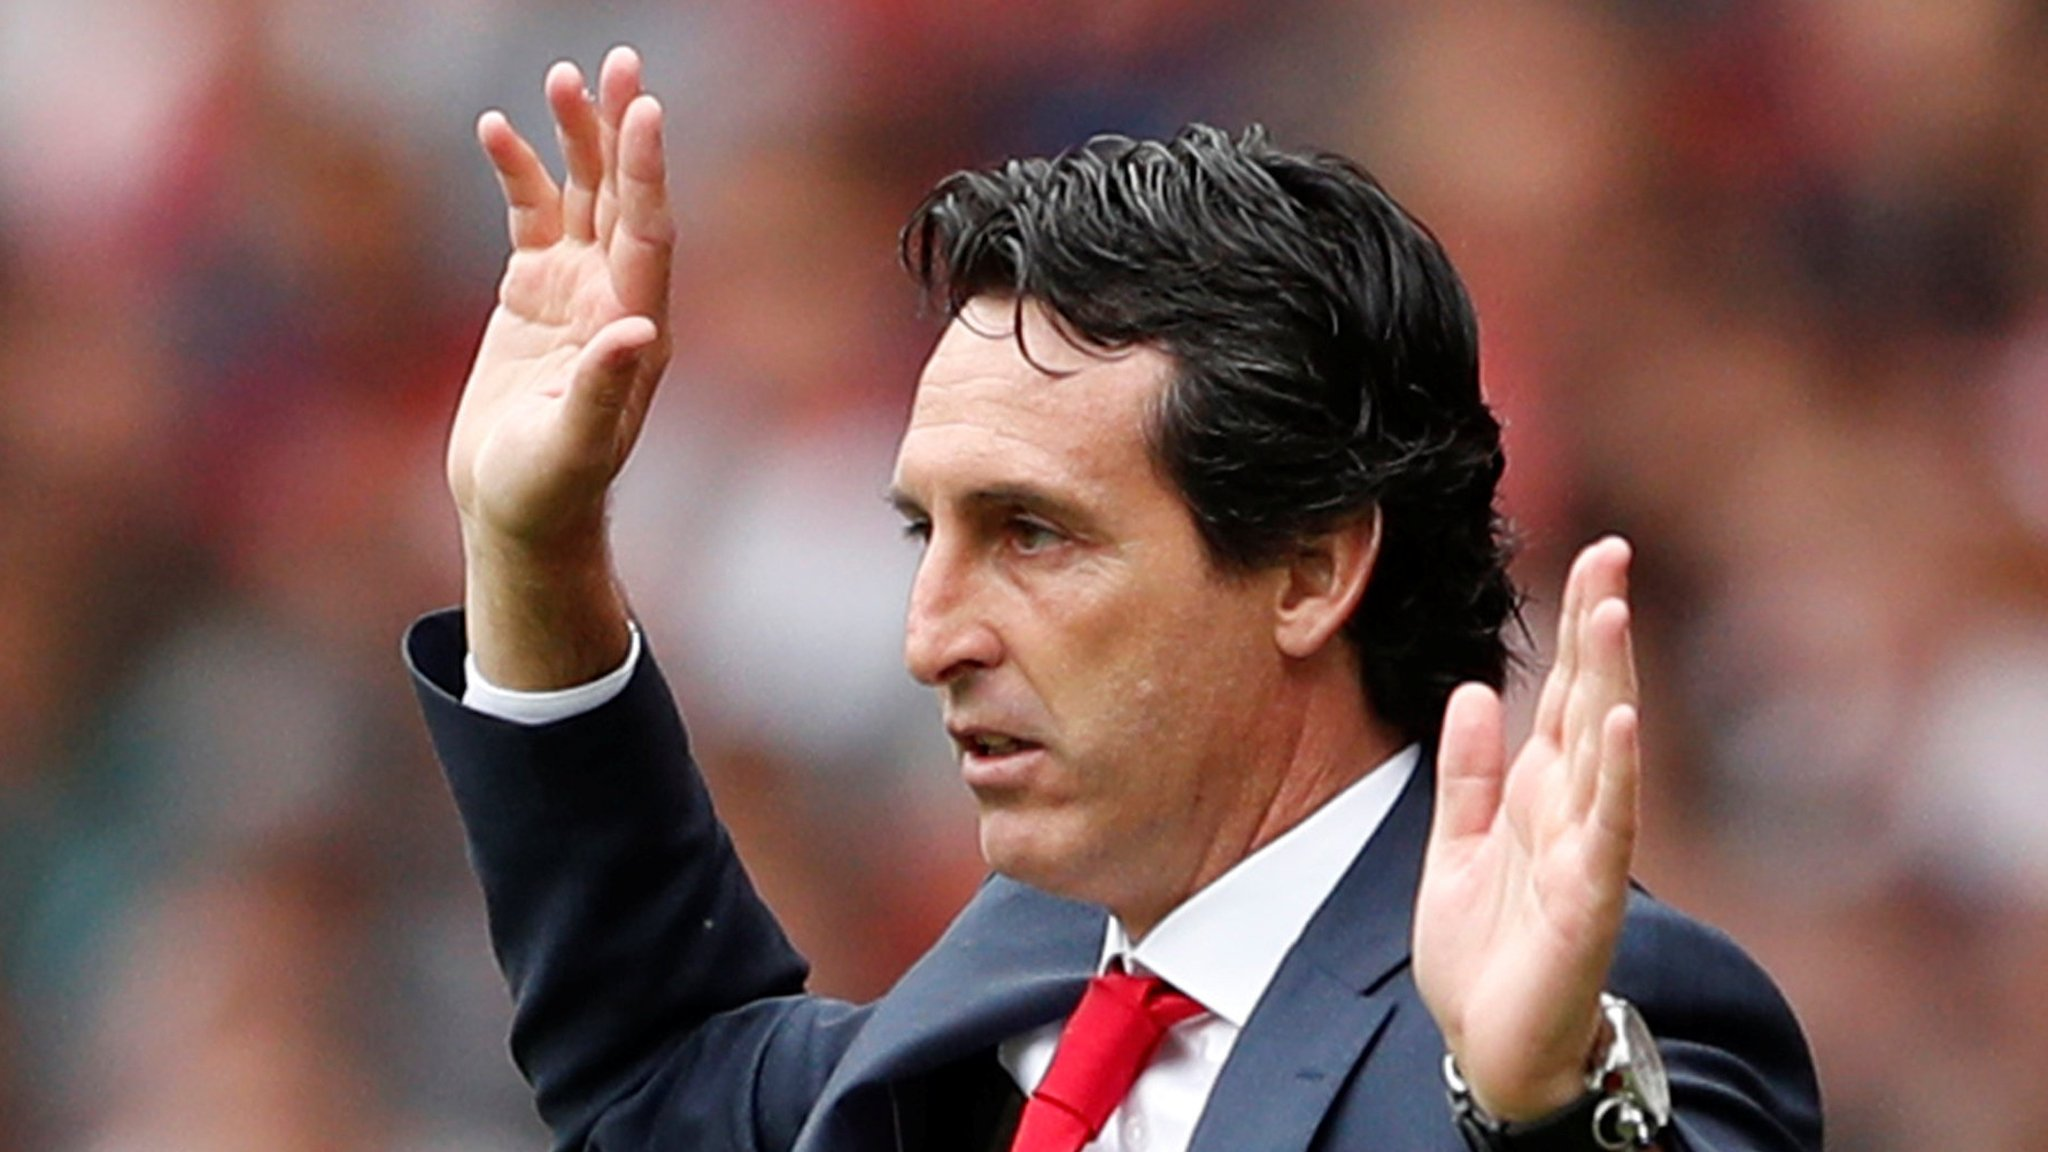 Analysis: Defeat in Emery's opener is a reality check for Arsenal - Keown